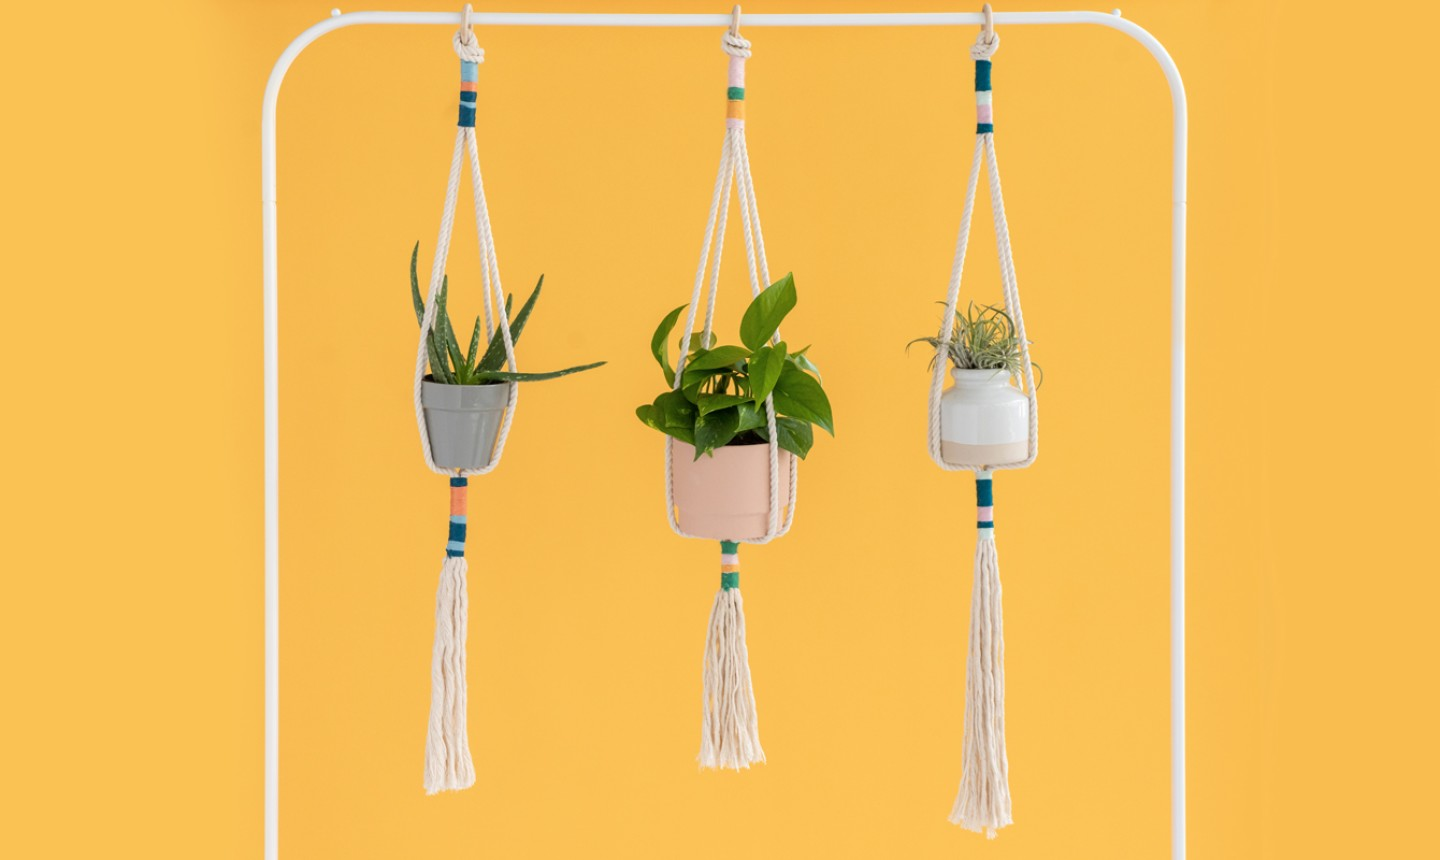 knotted plant hangers